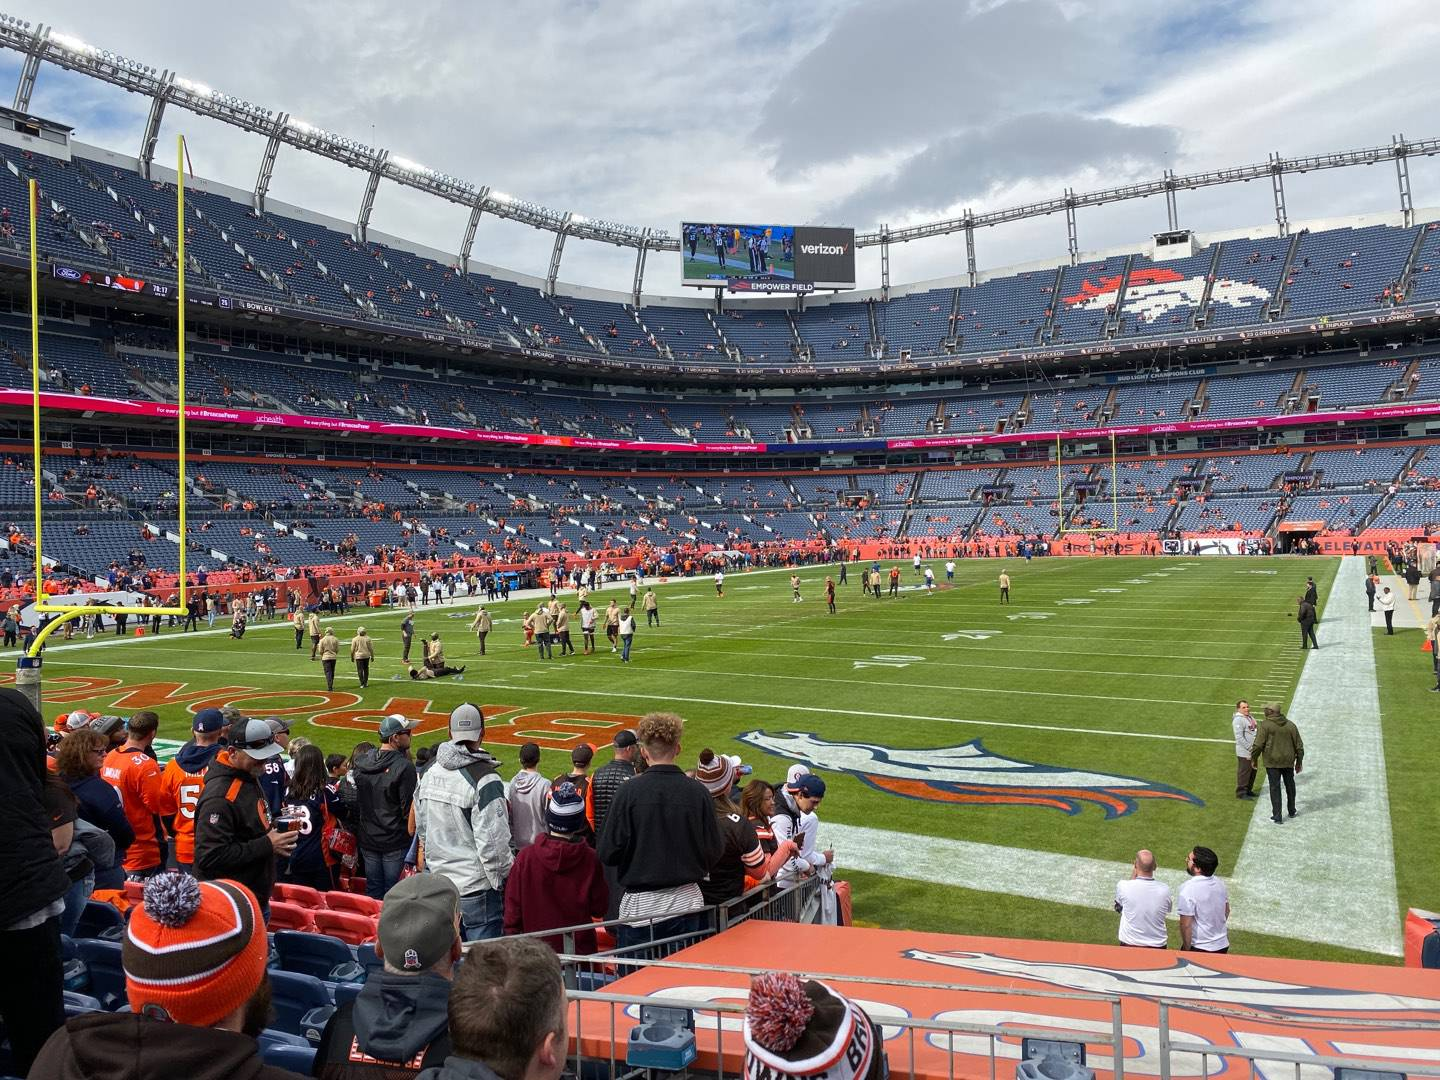 Empower Field at Mile High Stadium Section 130 Row 11 Seat 23